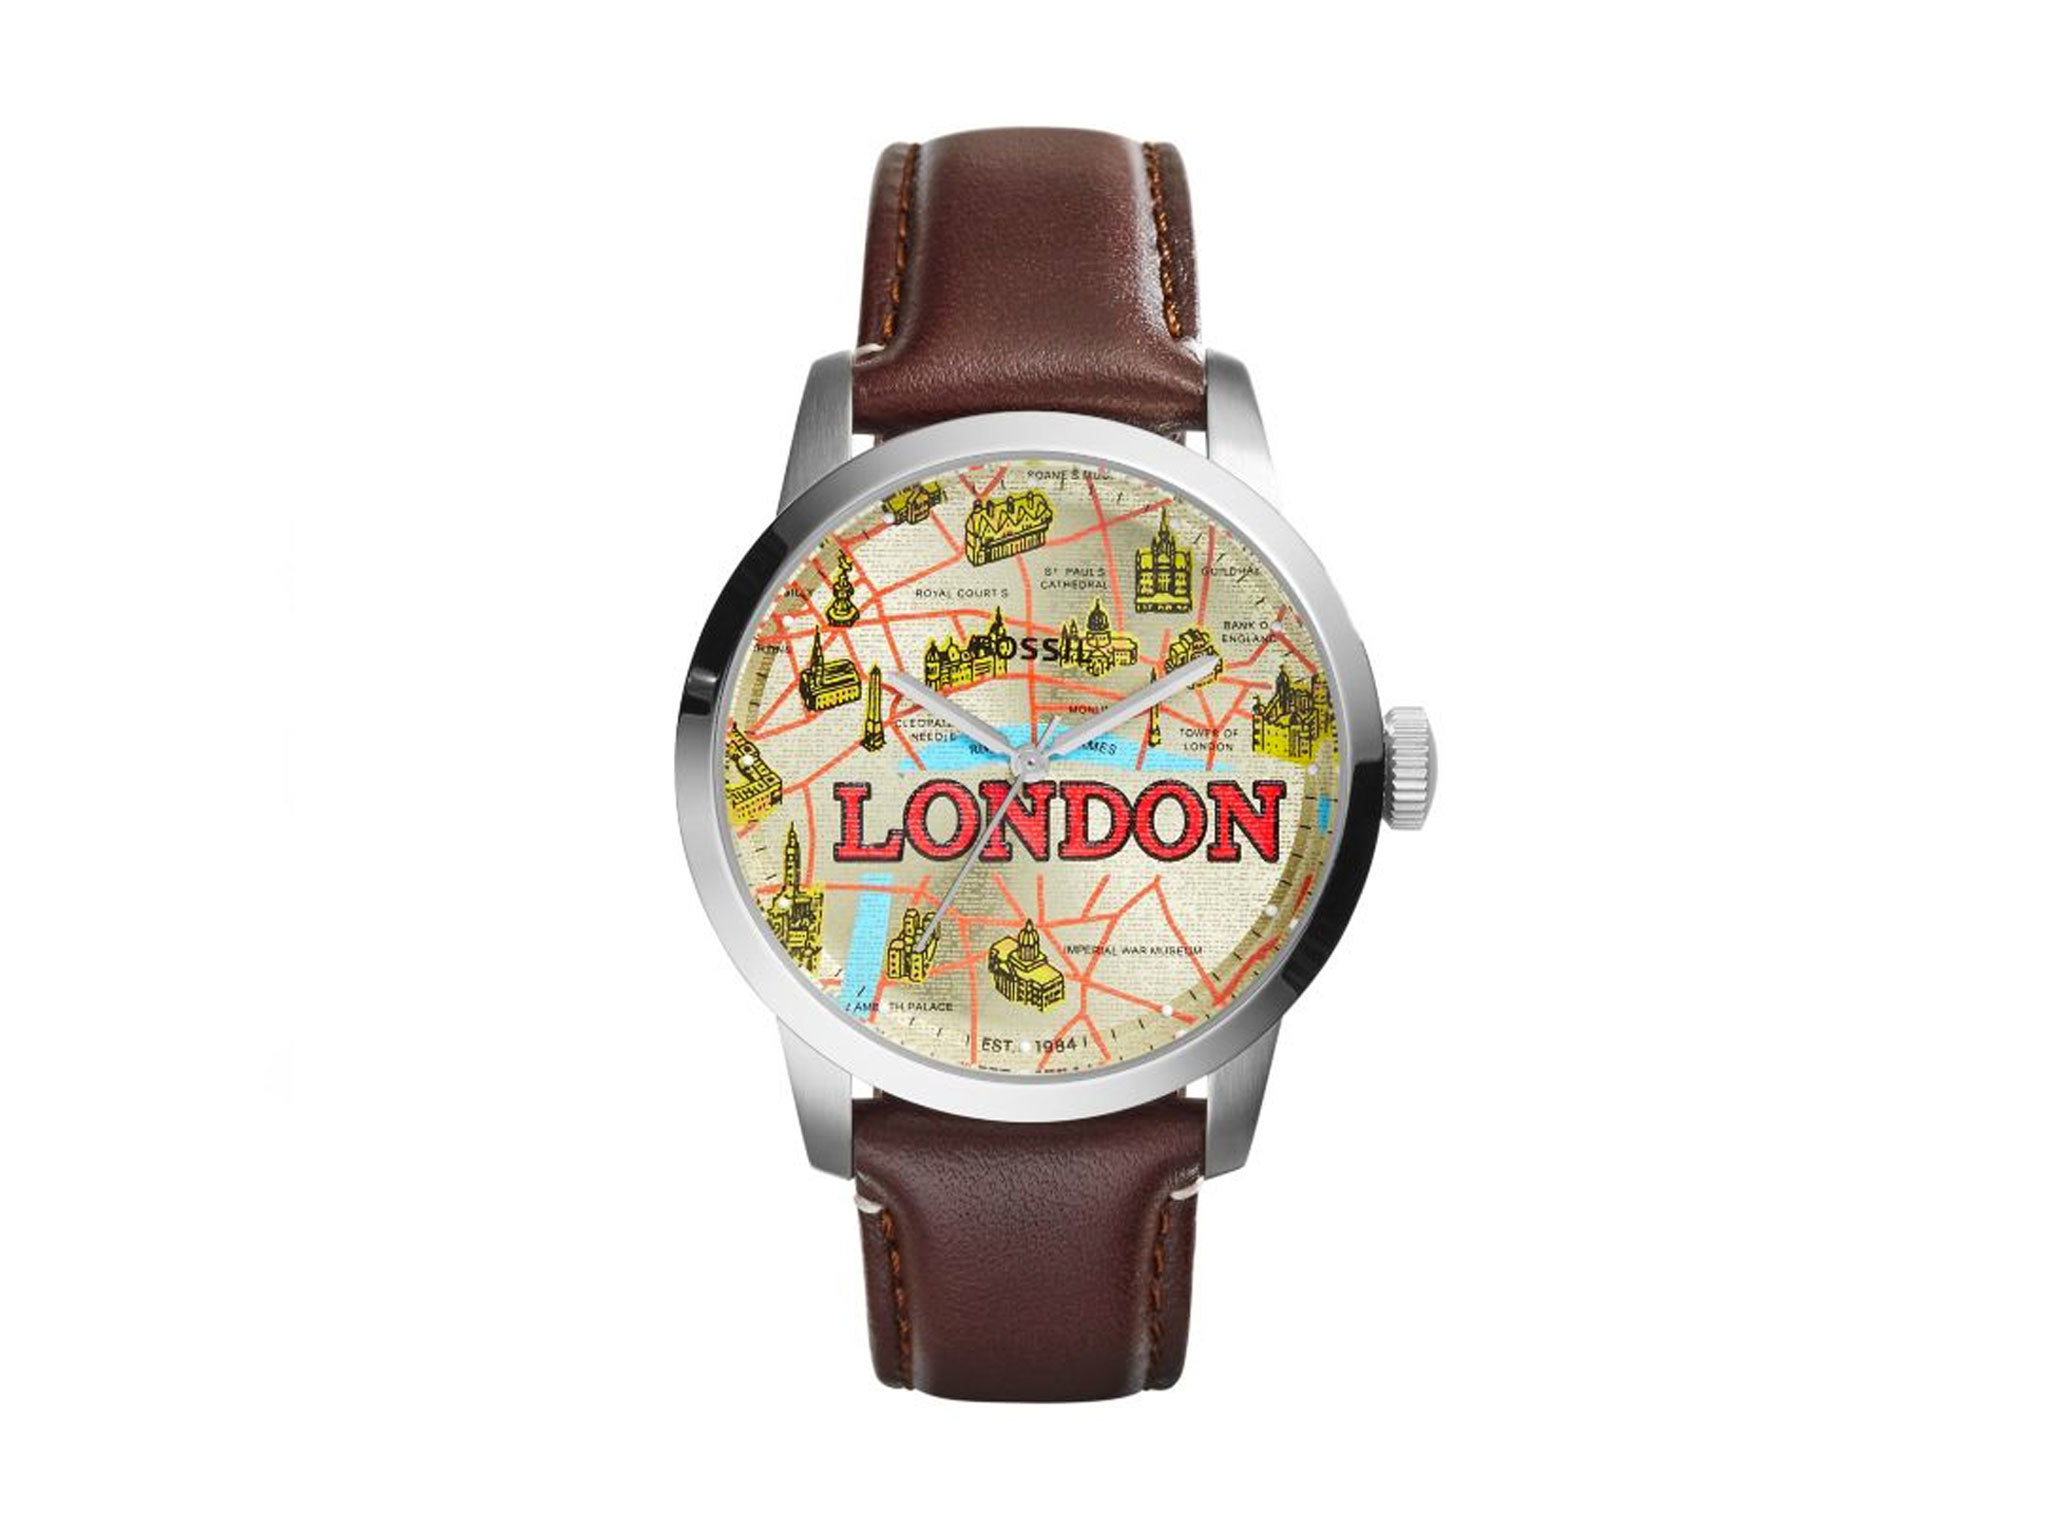 Fossil London Men's Brown Leather Strap Watch